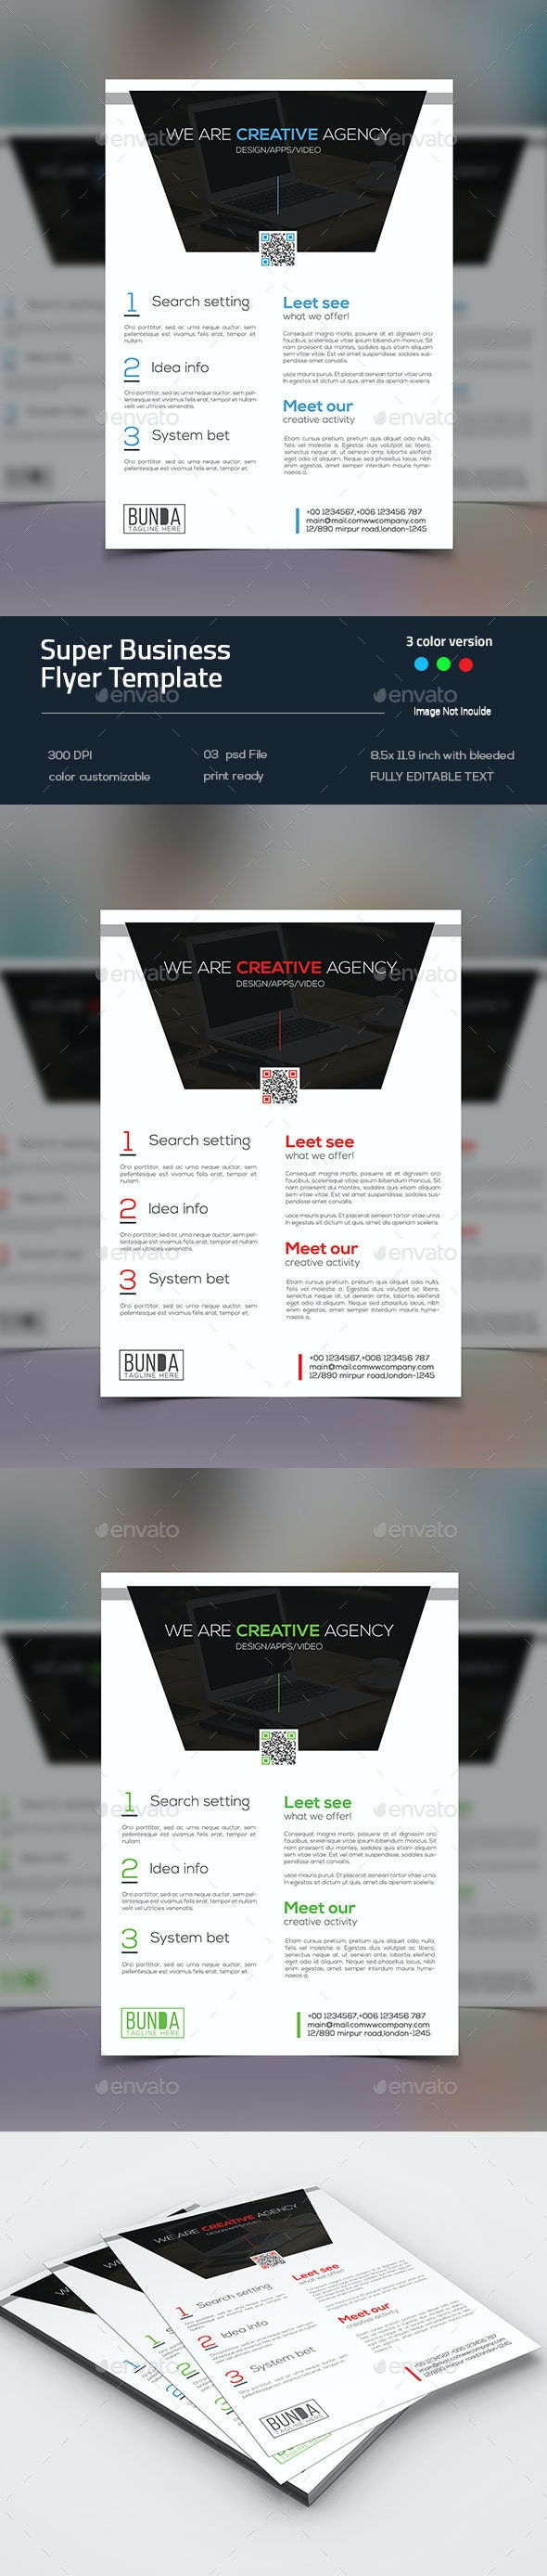 Super Business Flyer - Corporate Flyers